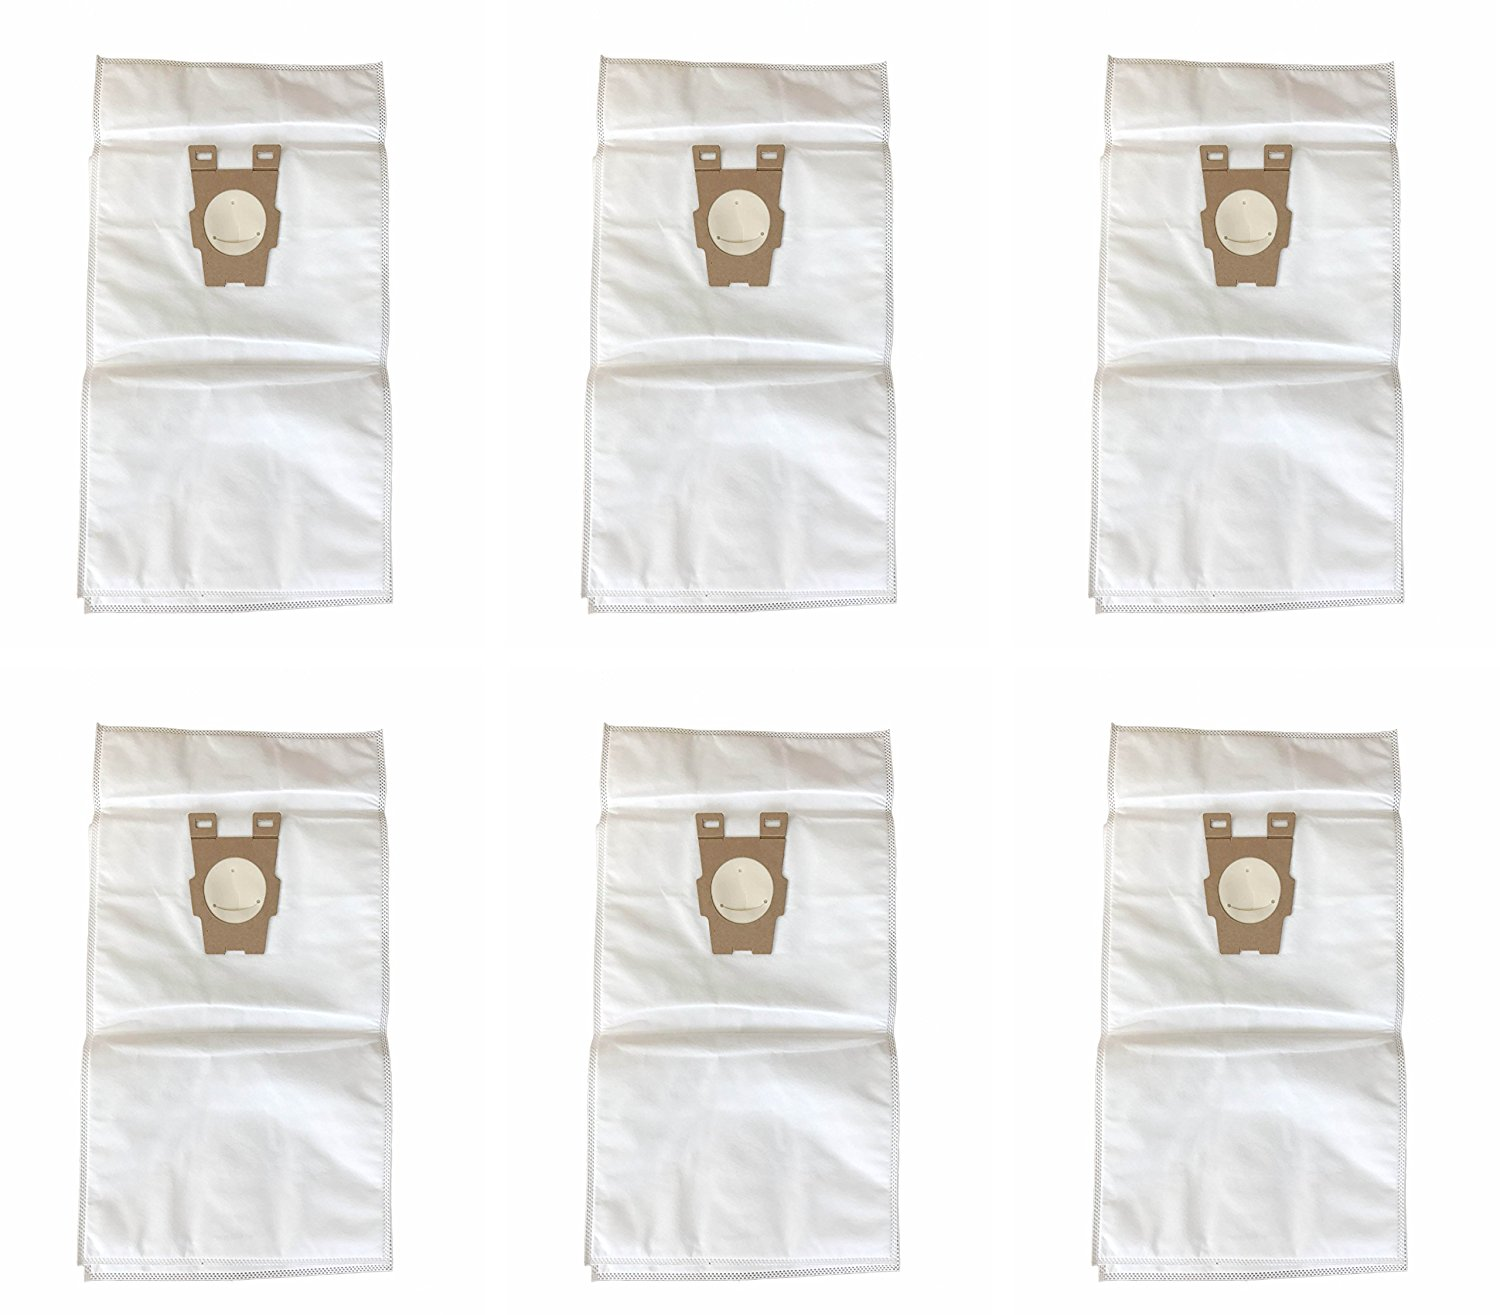 Style F HEPA Filtration Vacuum Bags Replacement for Kirby similar to Part#204808 / 204811 for Sentria Models, pack of 6 bags